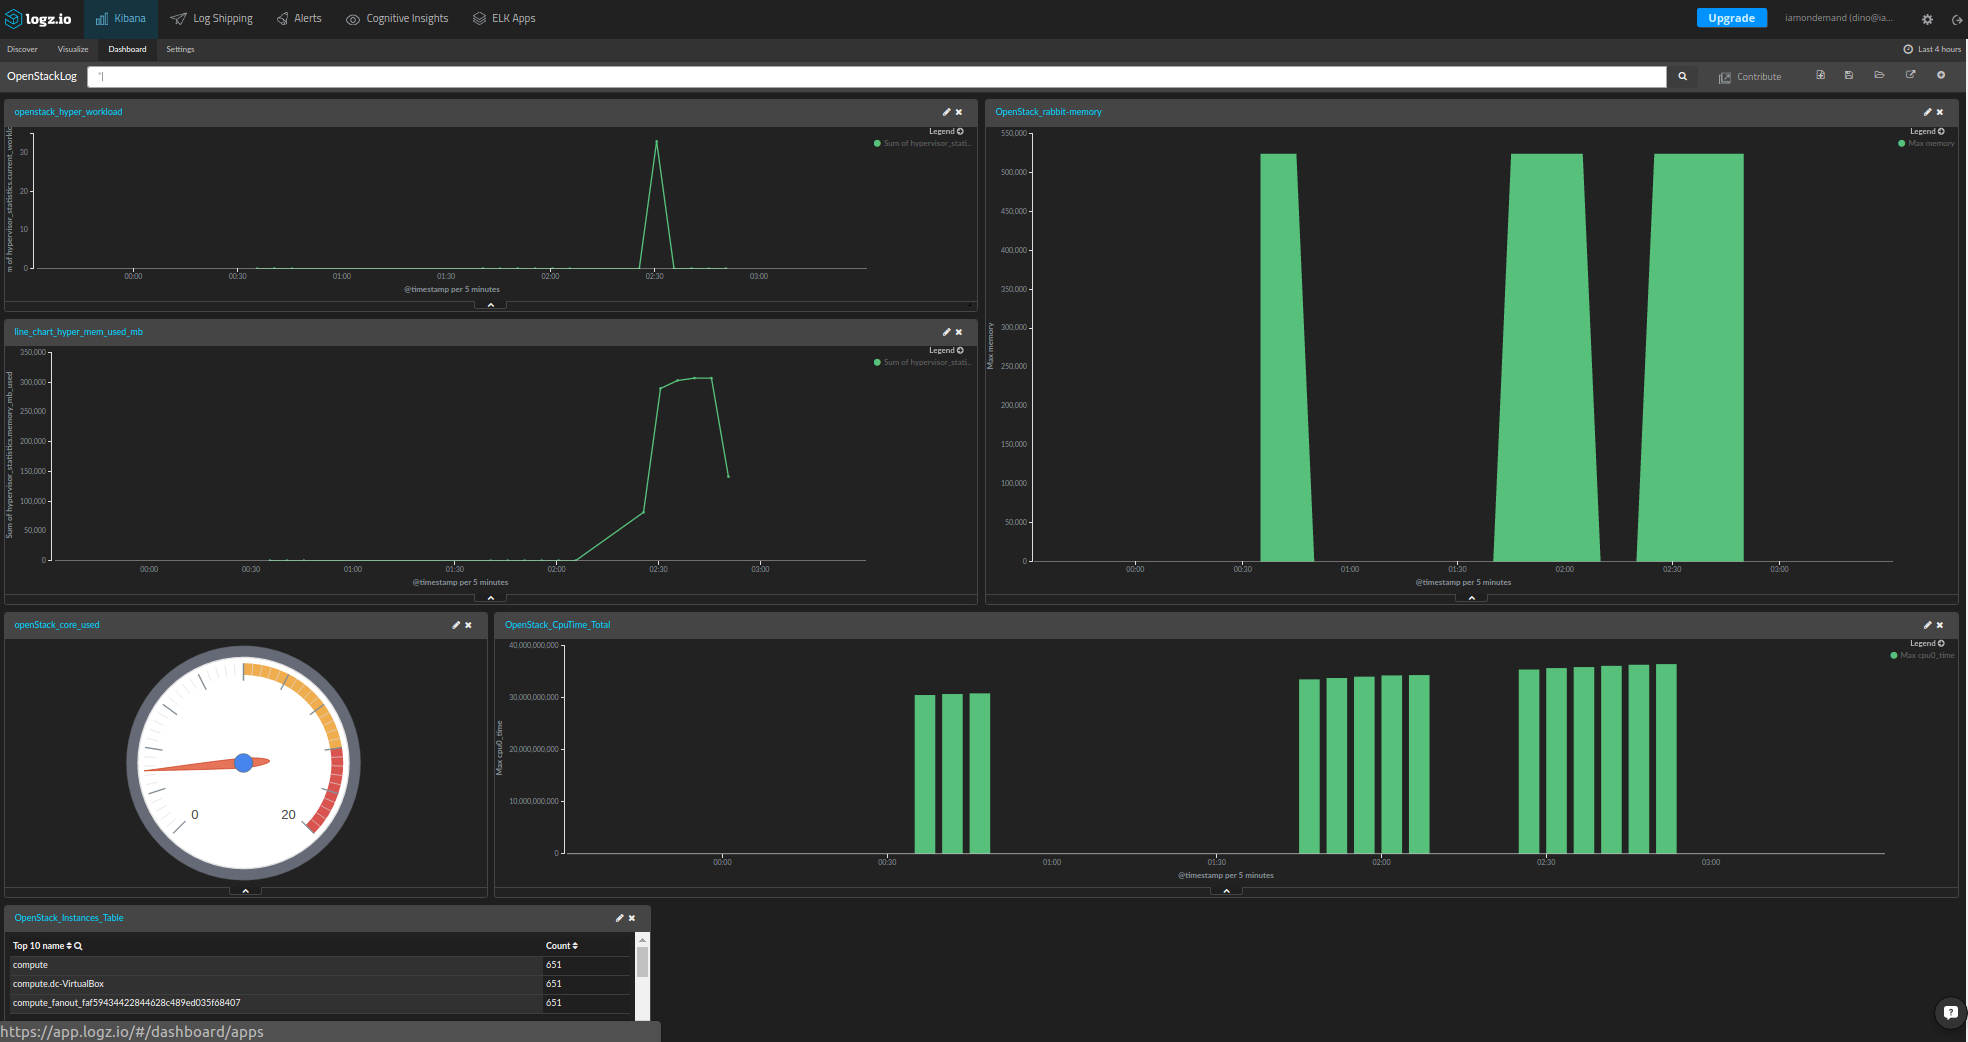 openstack monitoring dashboard